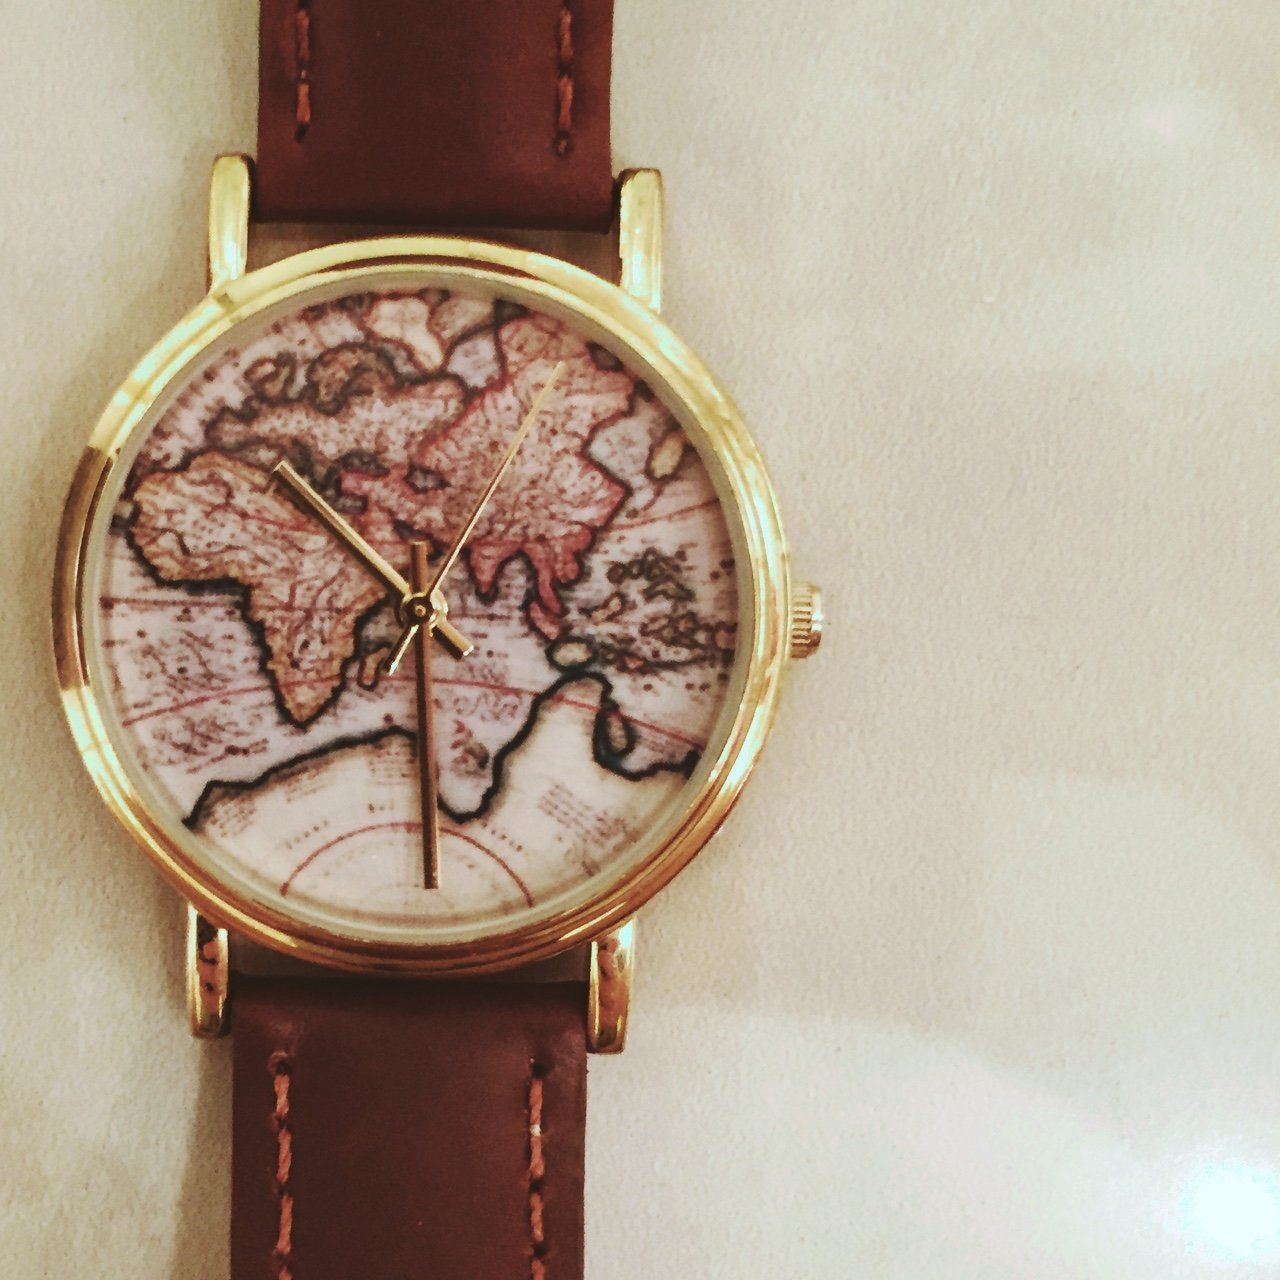 Urban Outfitters World Map Watch.Price Reduced World Map Vintage Watch Sold Out On Urban Depop